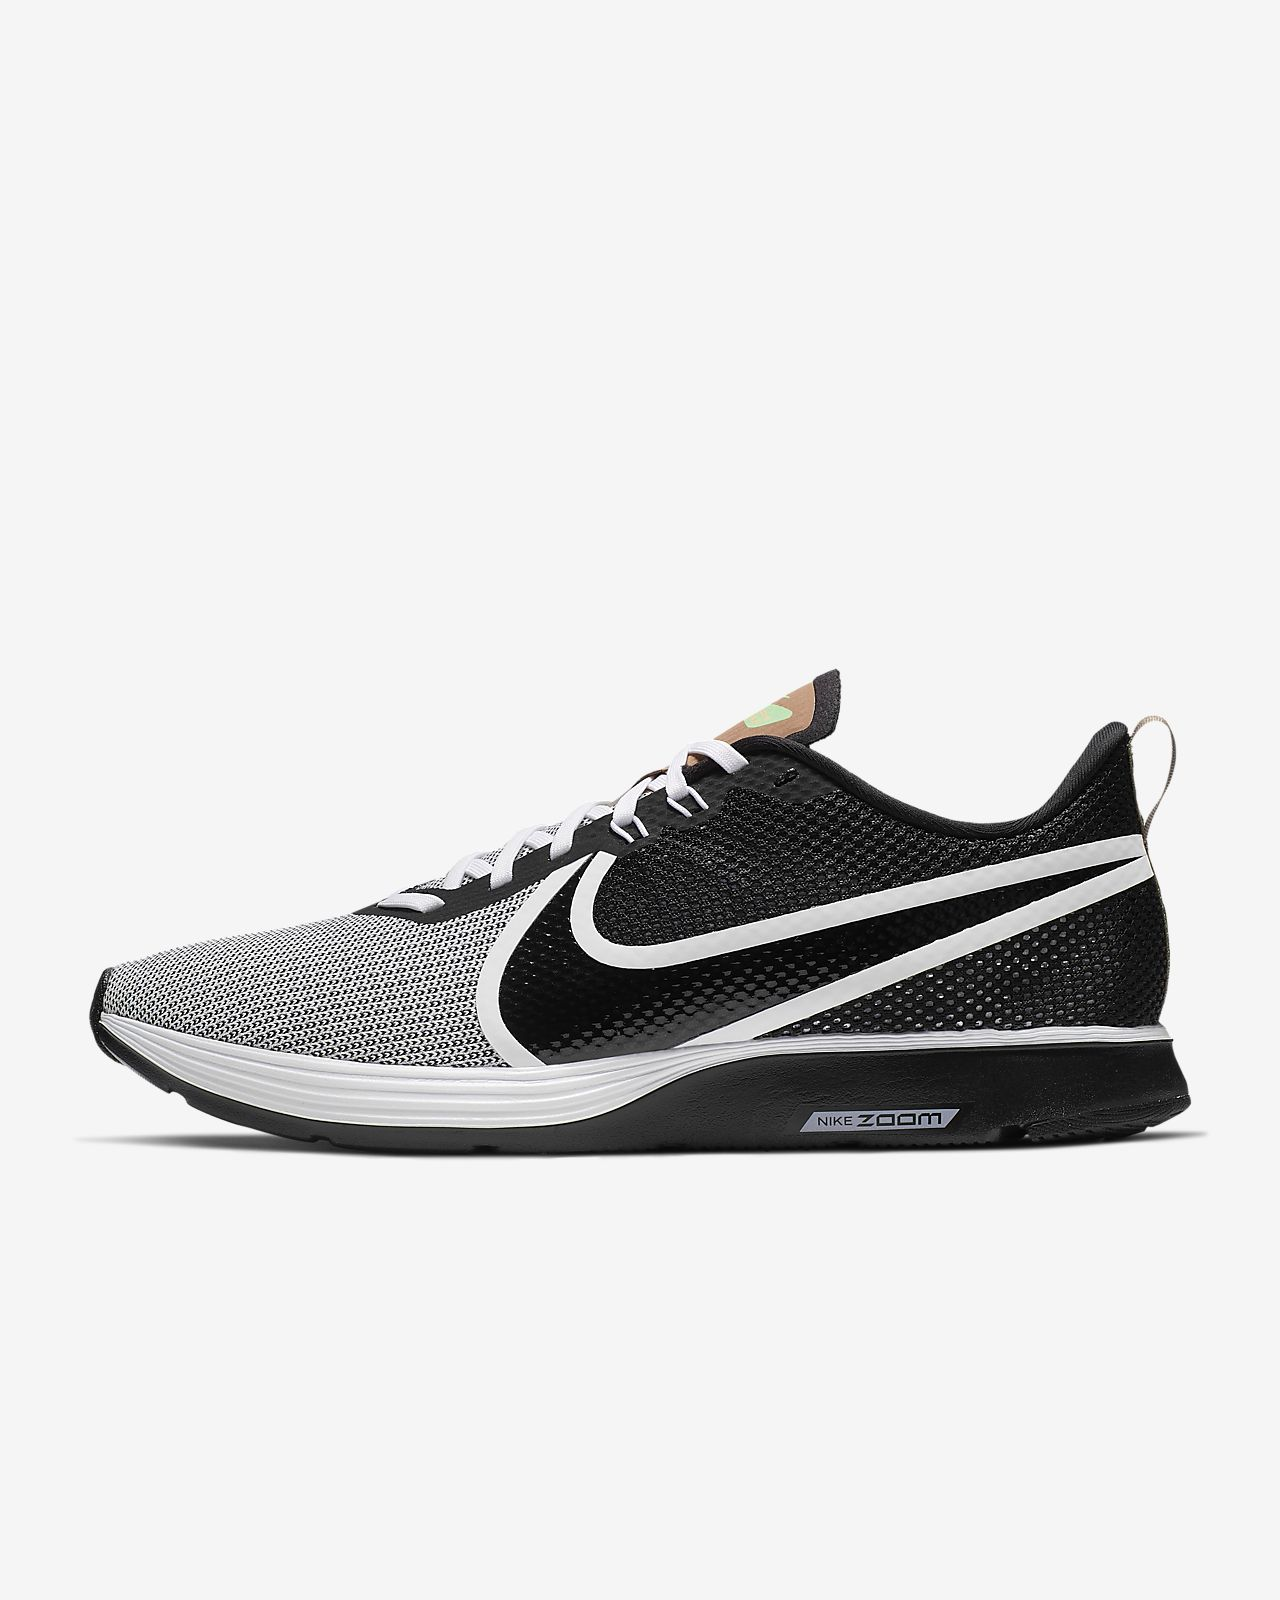 d0e9ed8f88f6 Nike Zoom Strike 2 SE Men s Running Shoe. Nike.com GB